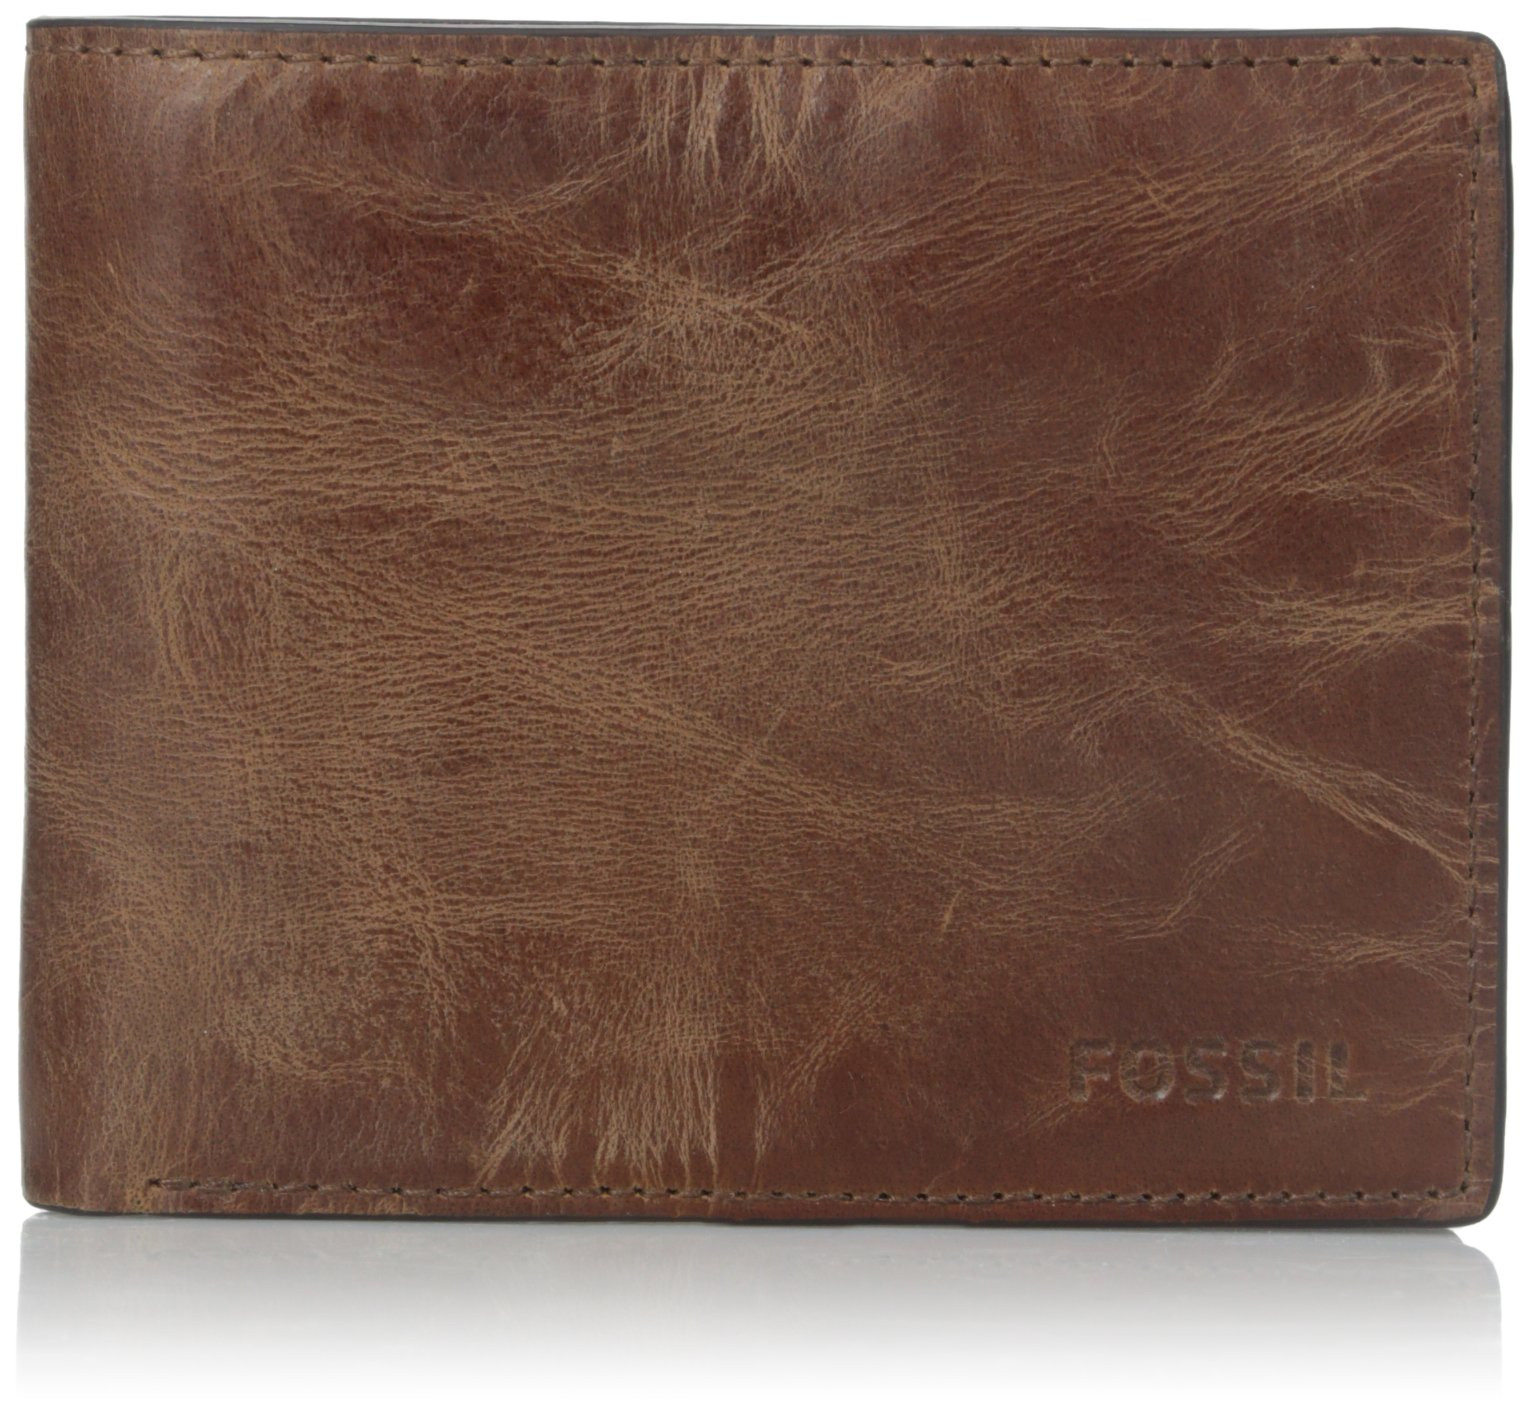 Fossil Men's RFID Flip ID Bifold Wallet, Brown, One Size